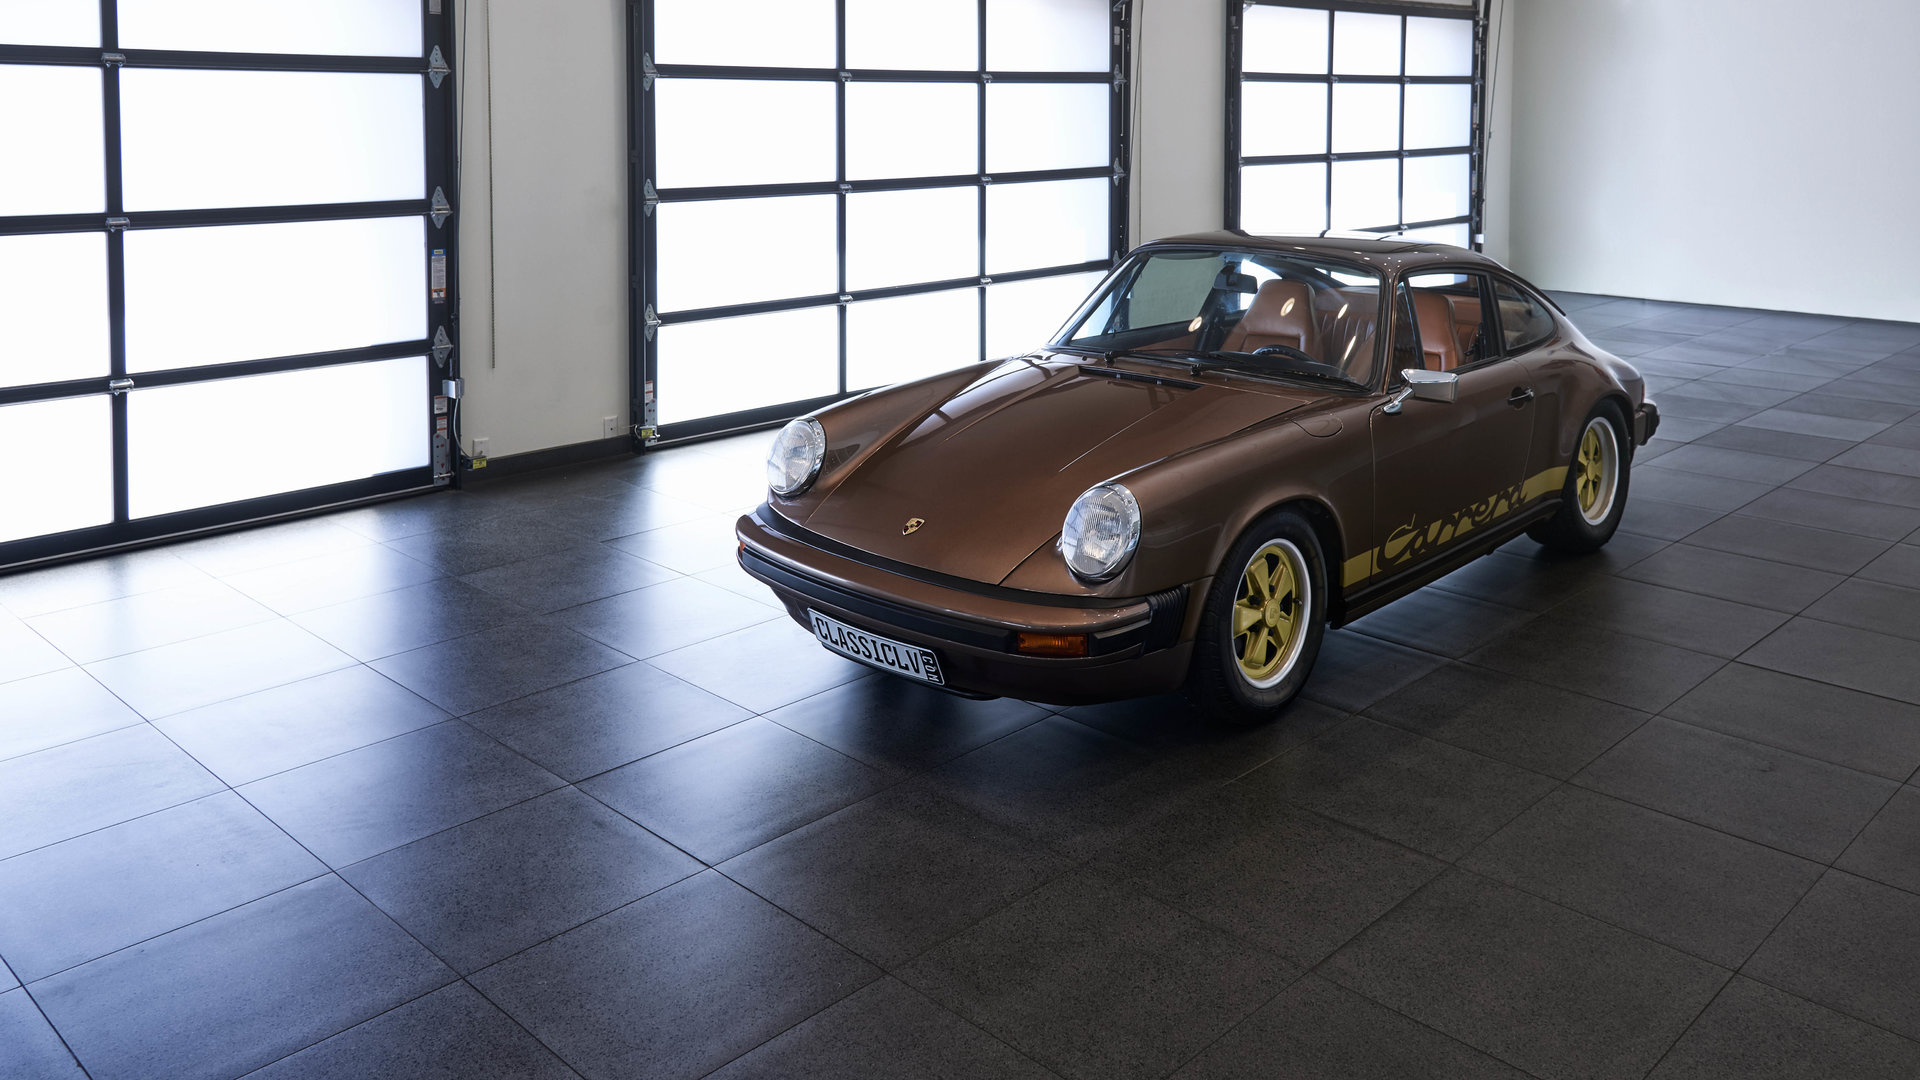 1974 Porsche 911 27 Mfi Euro Gaudin Classic 1973 912 Coupe Type Of Engine